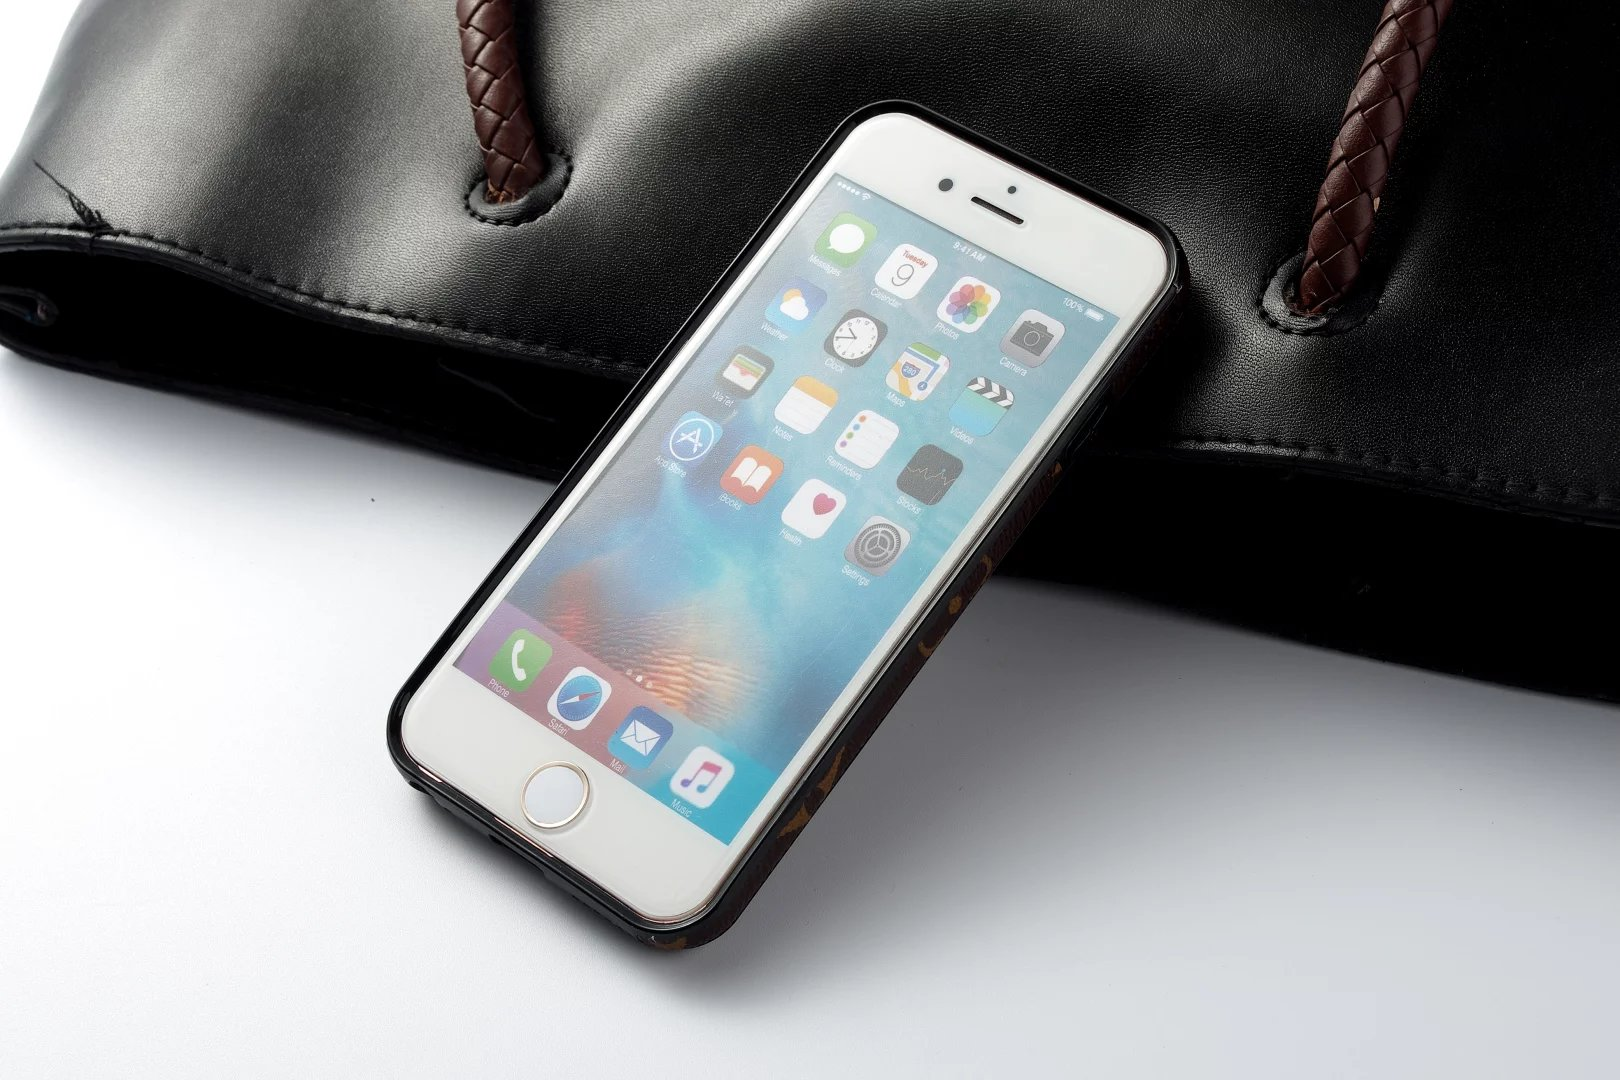 handyhülle iphone beste iphone hülle Louis Vuitton iphone 8 Plus hüllen handytasche 8 Pluslbst gestalten online iphone 8 Plus hwarz hülle iphone 8 Plus 8 Plus zoll iphone 8 Plus vergleich schutzhülle iphone 8 Plus leder iphone 8 Plus flip ca8 Plus ledertasche